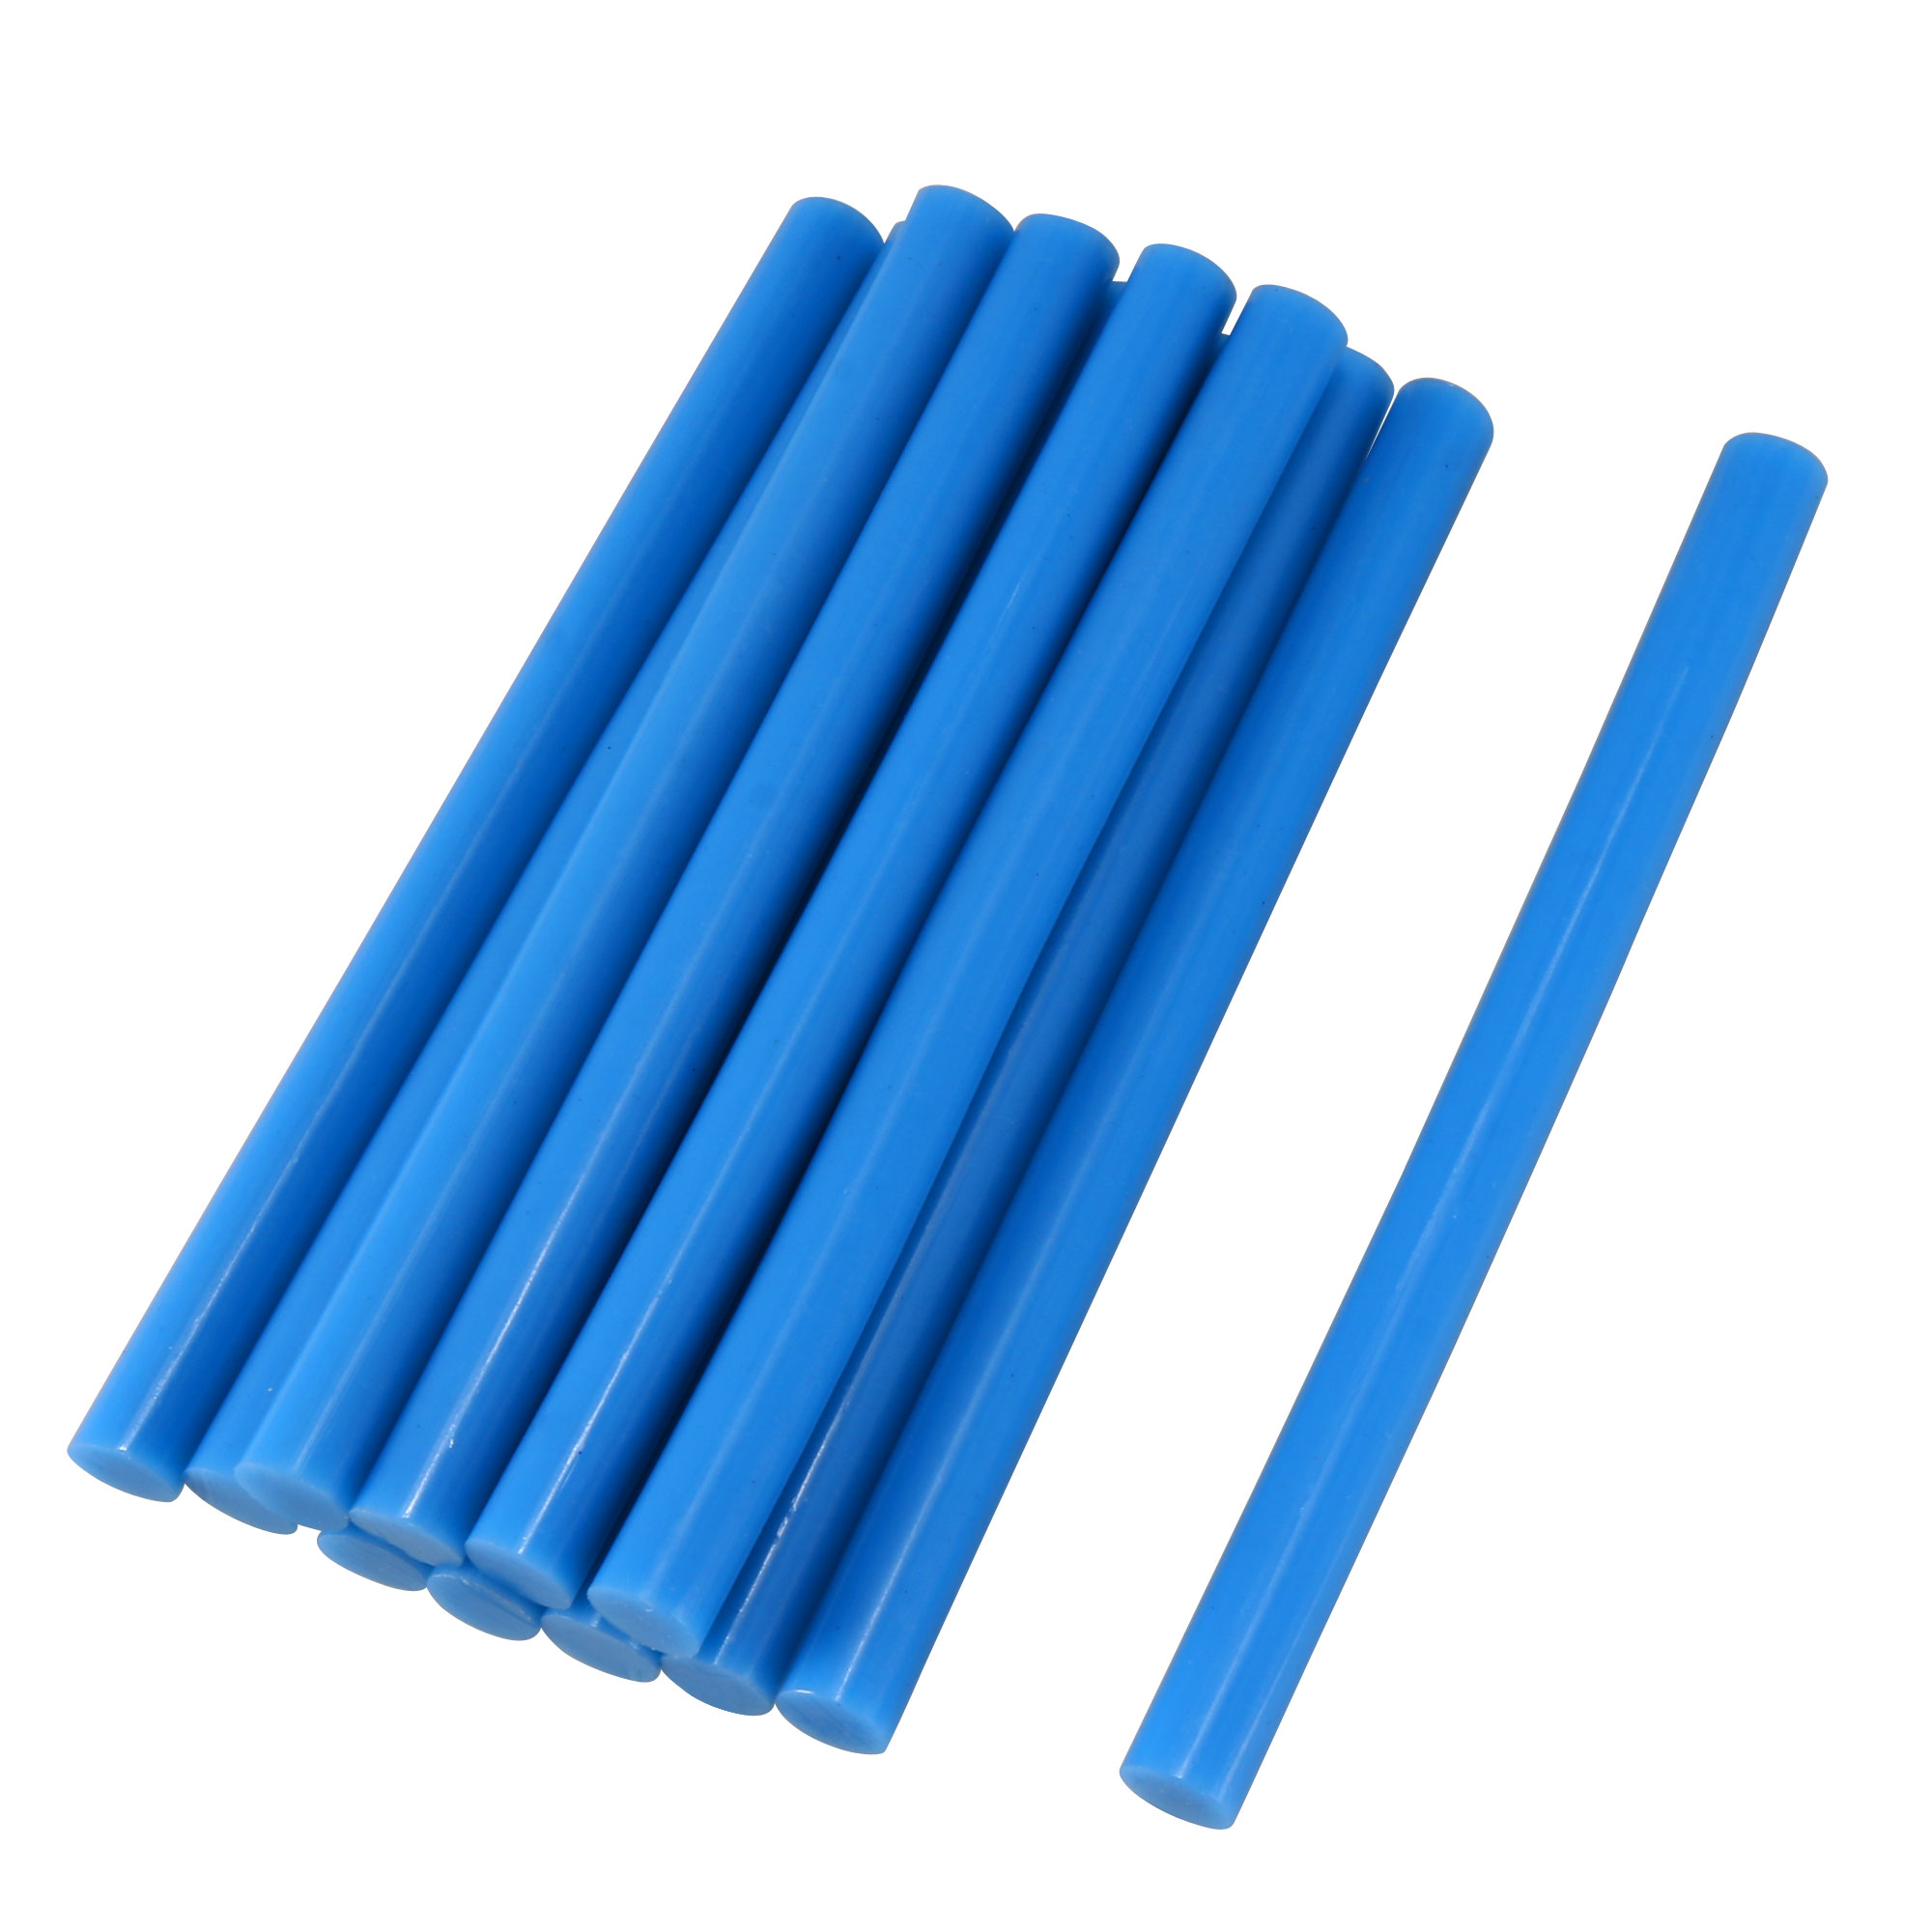 12 Pcs Blue Hot Melt Glue Gun Adhesive Sticks 7mm x 100mm